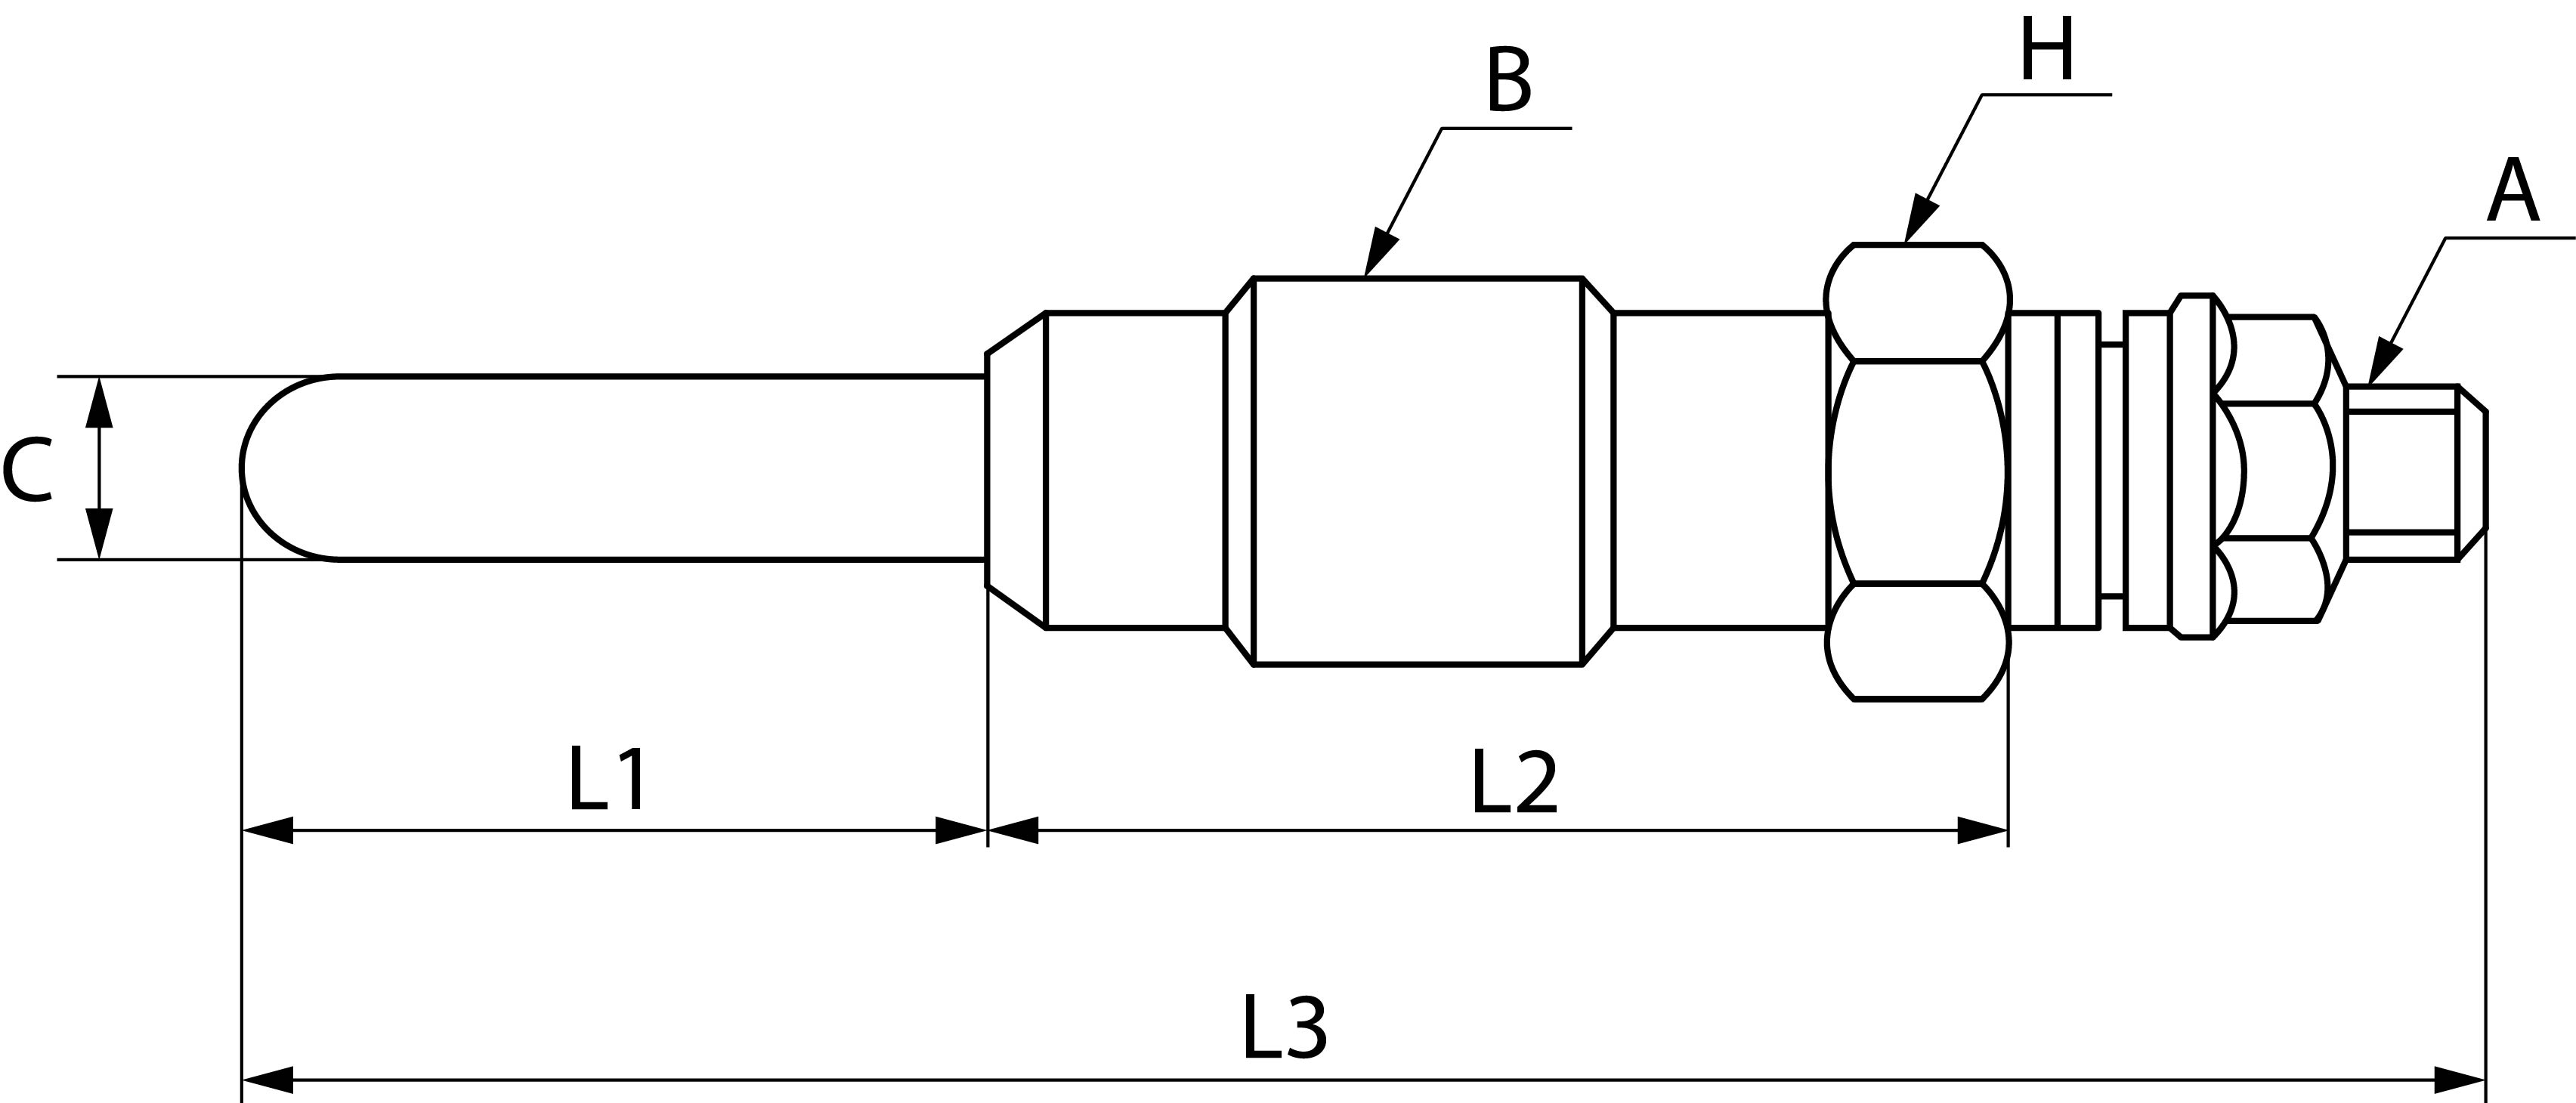 100644 glow plug rh hc cargo co uk 2001 F250 Glow Plug Diagram 82 6 2 Diesel  Glow Plug Diagram